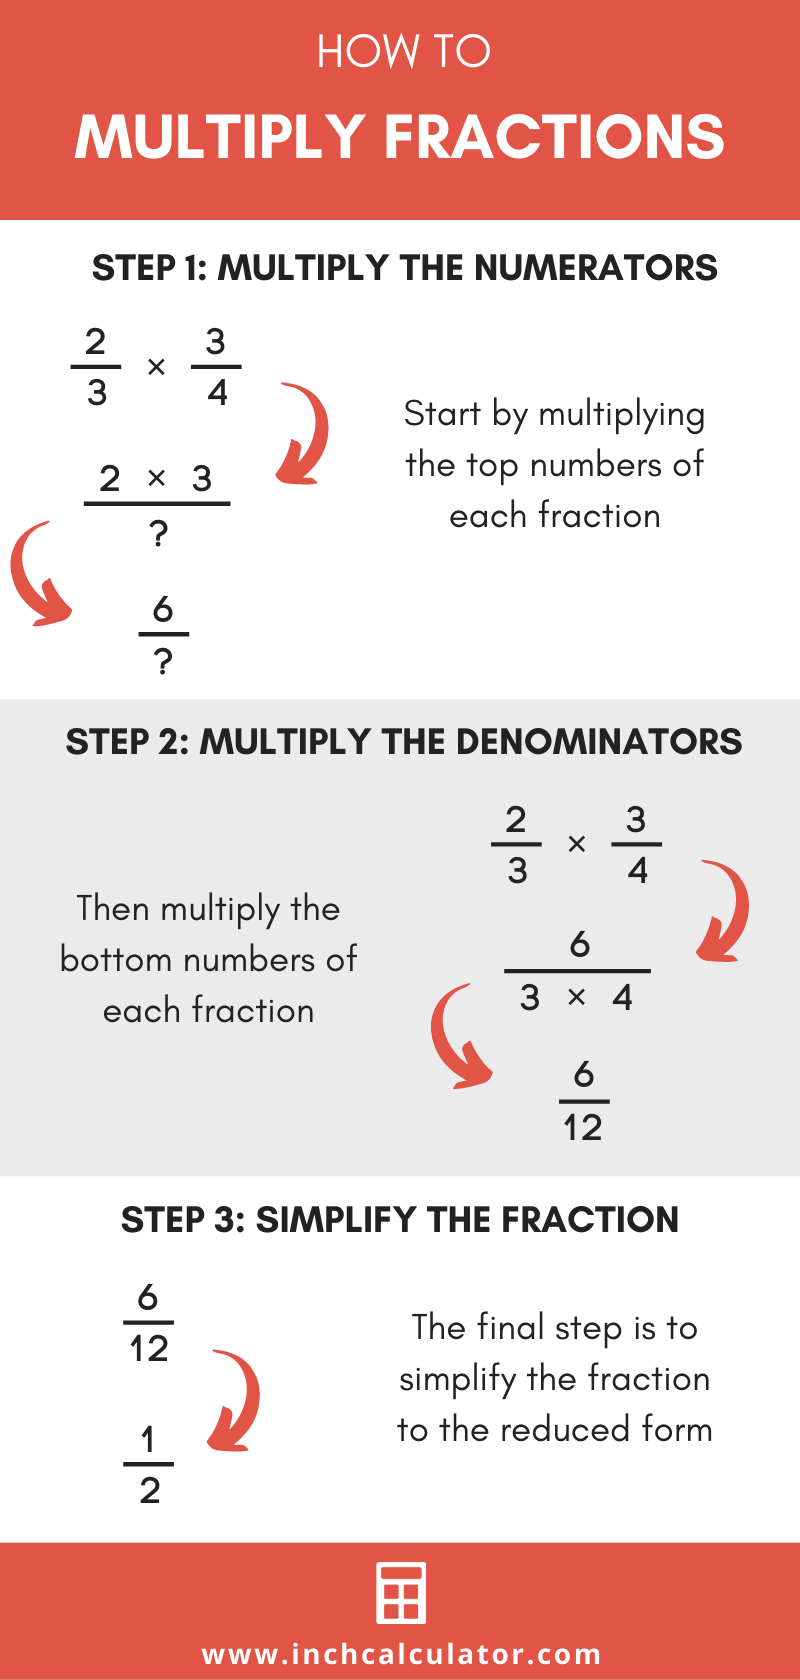 Illustration showing the three steps to multiply two fractions